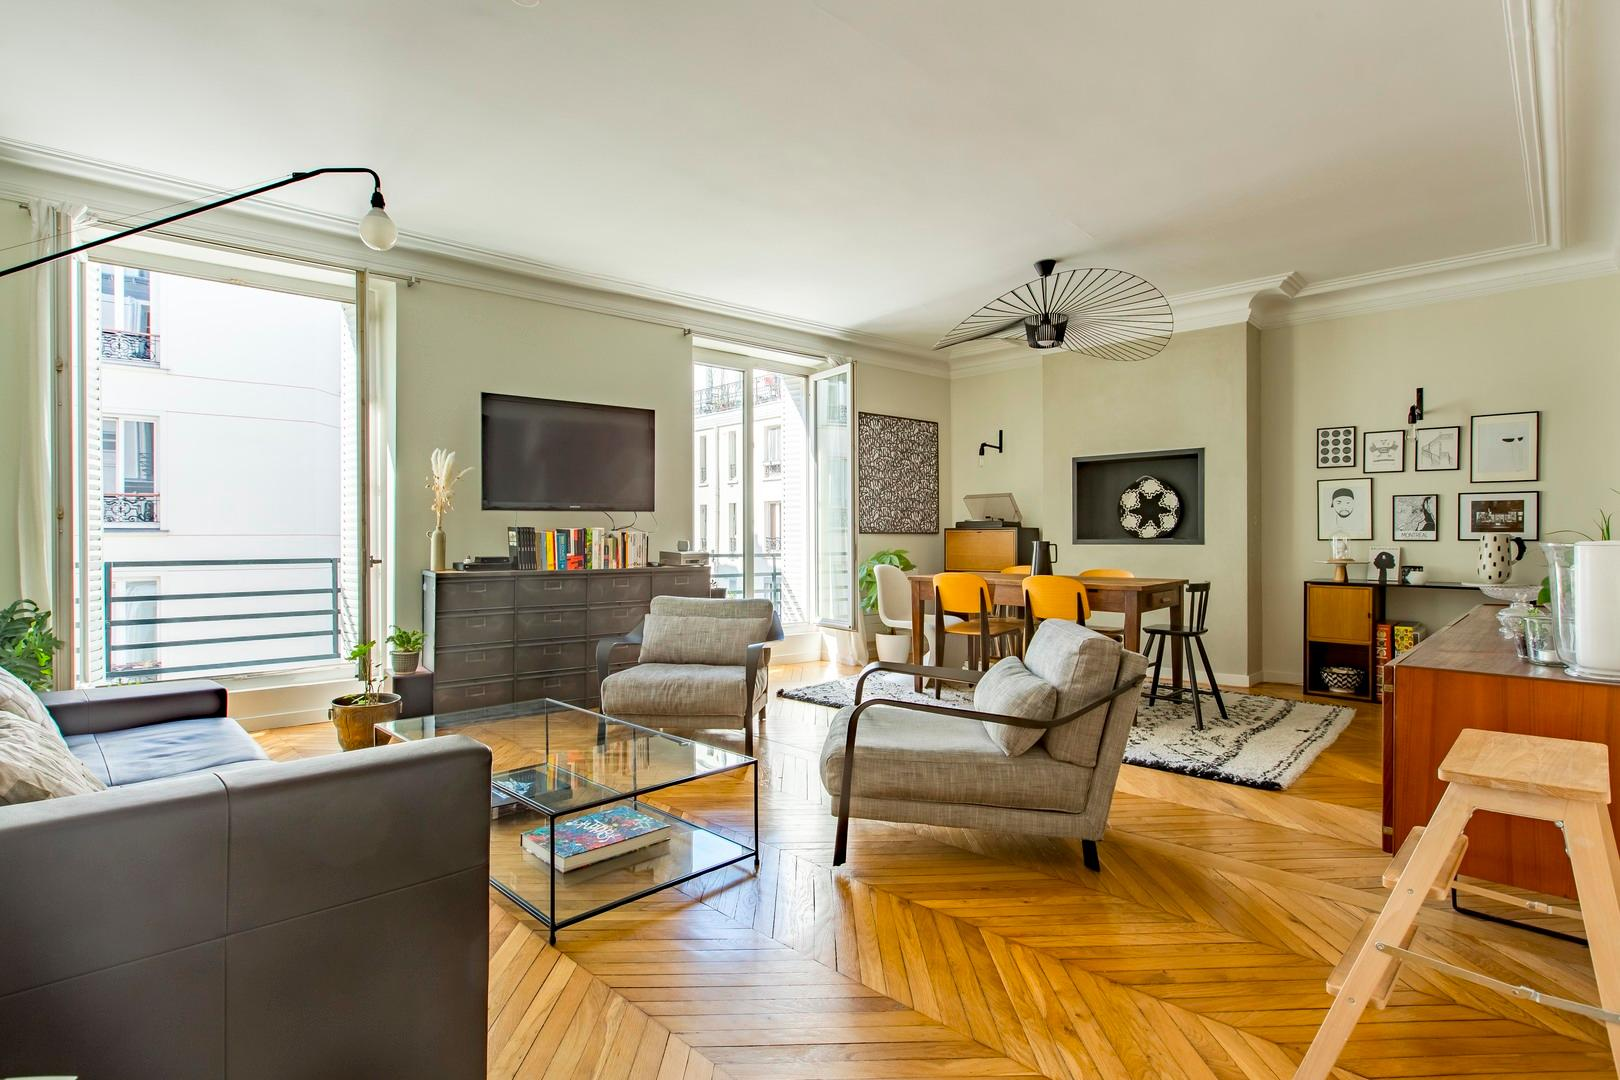 Property Image 1 - Chic Parisian Apartment in the 11th with an Arty Twist